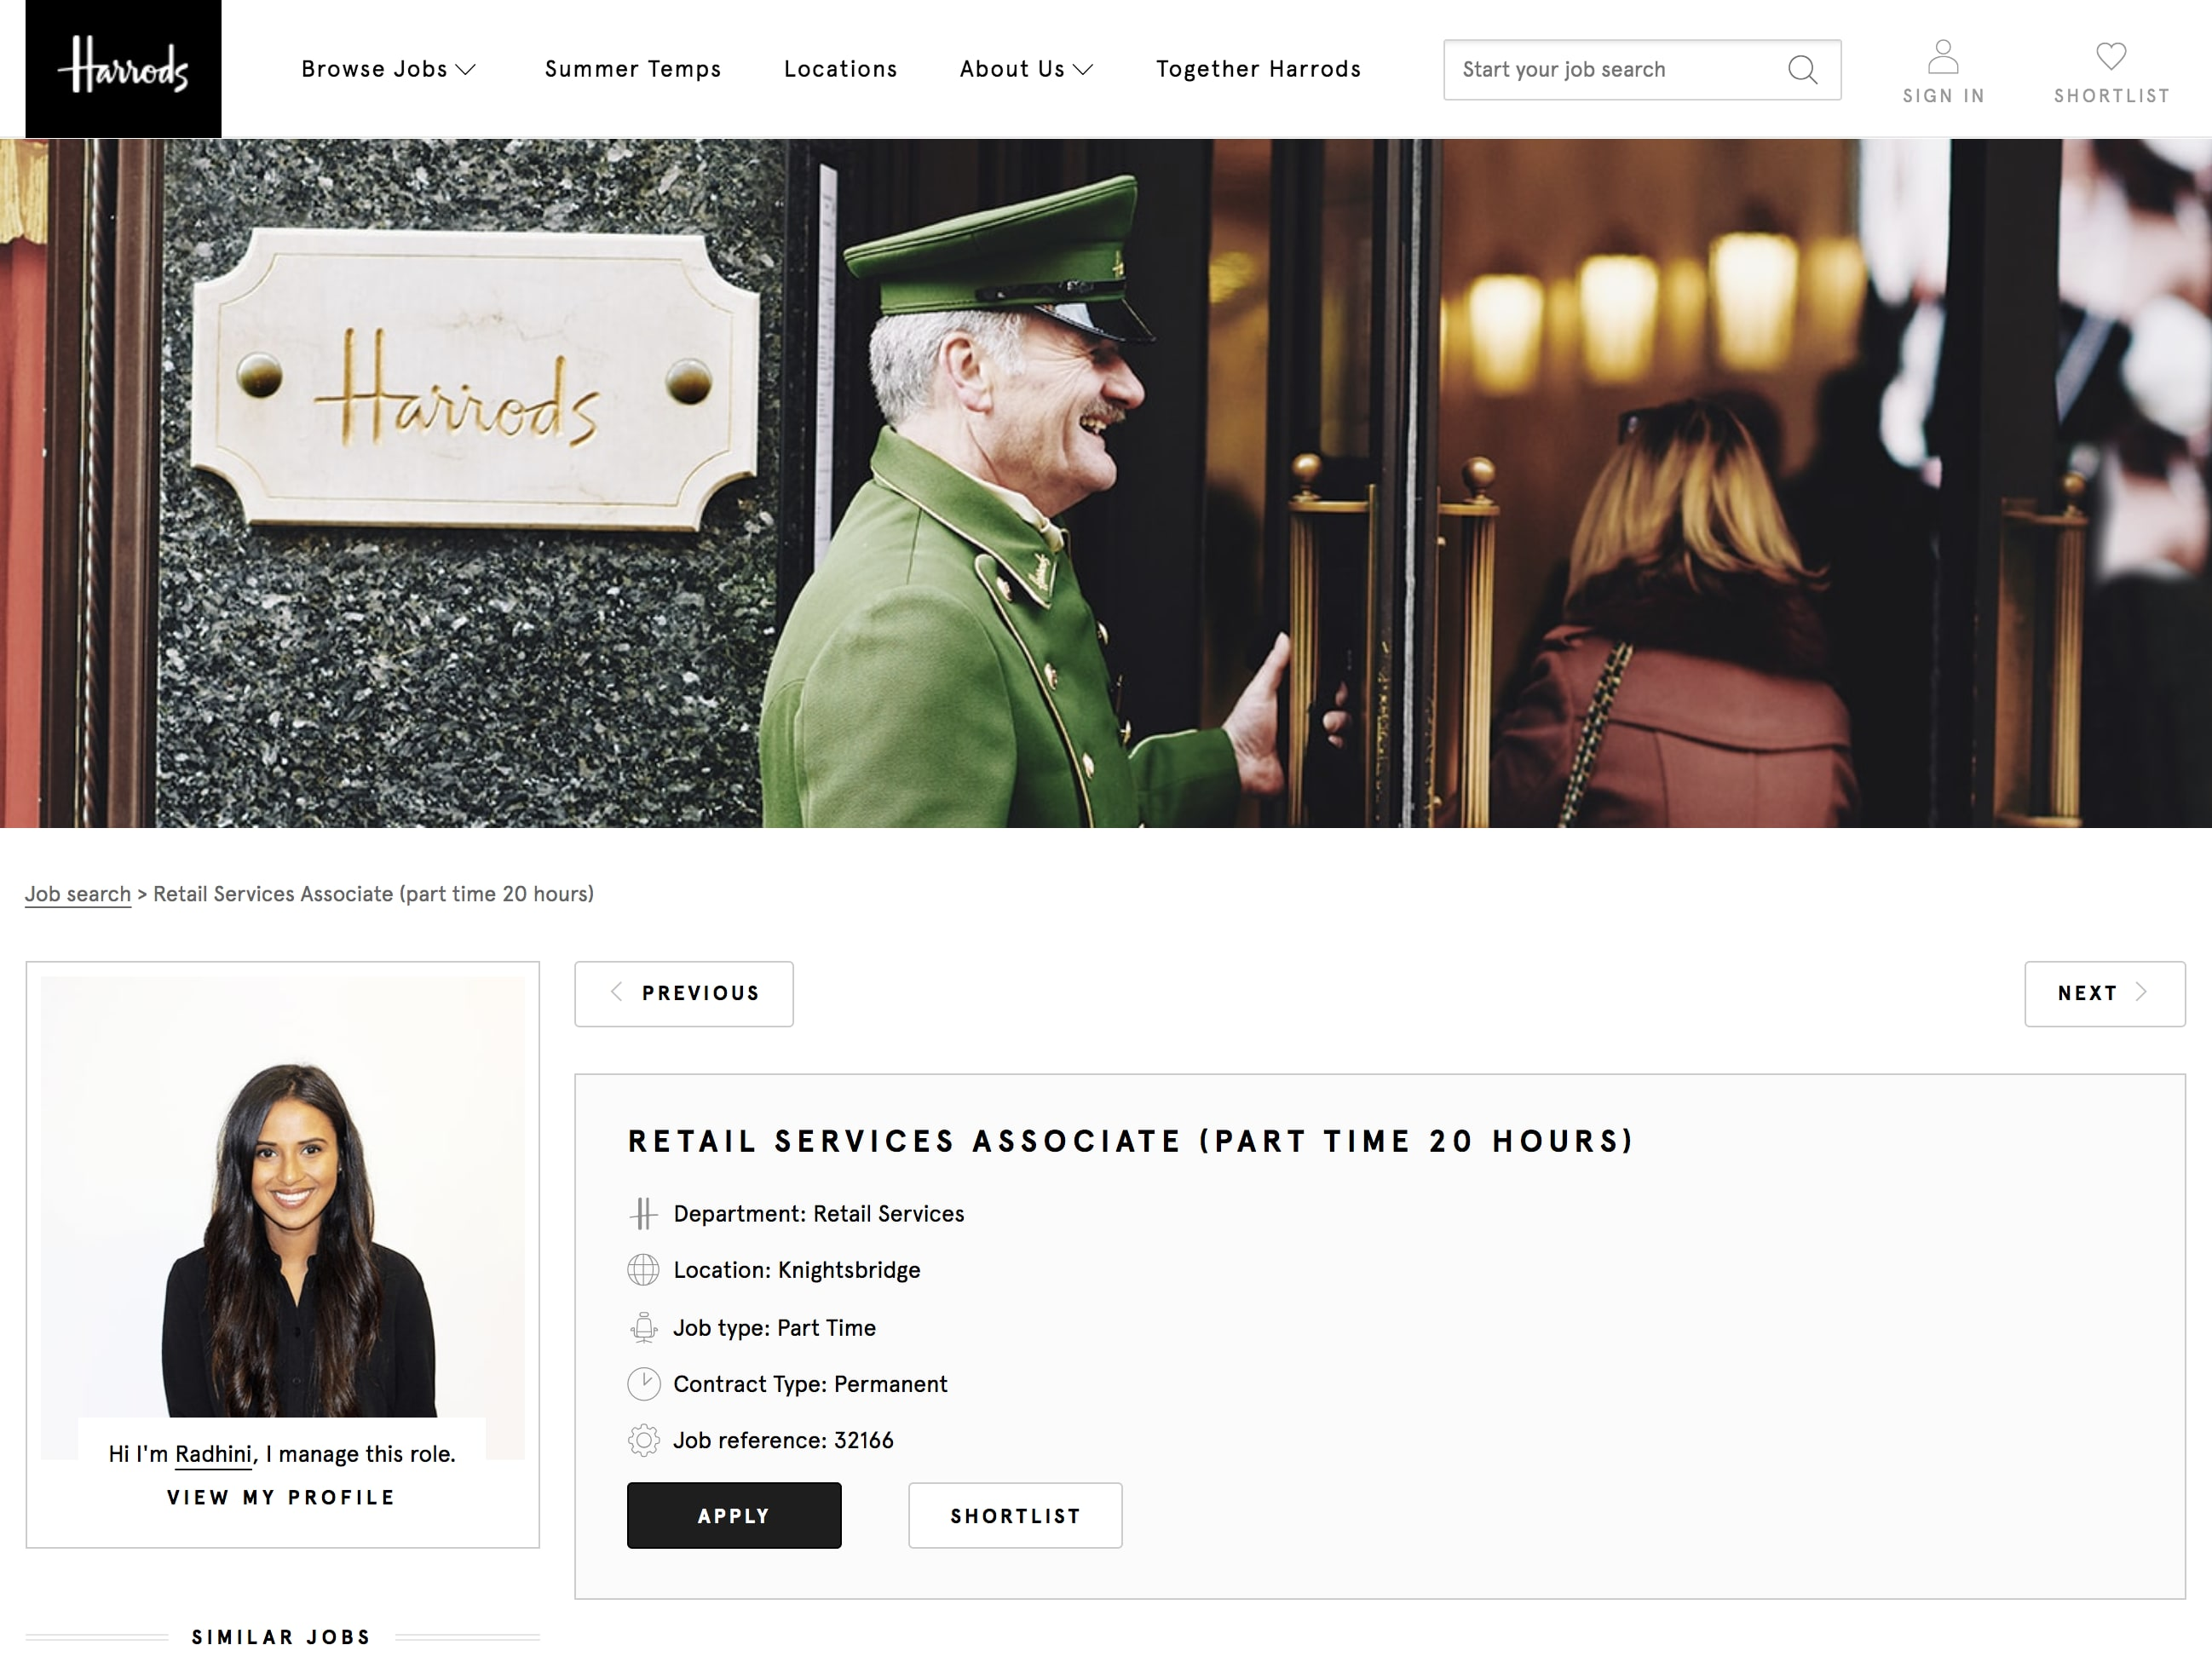 Harrods Career Page Example